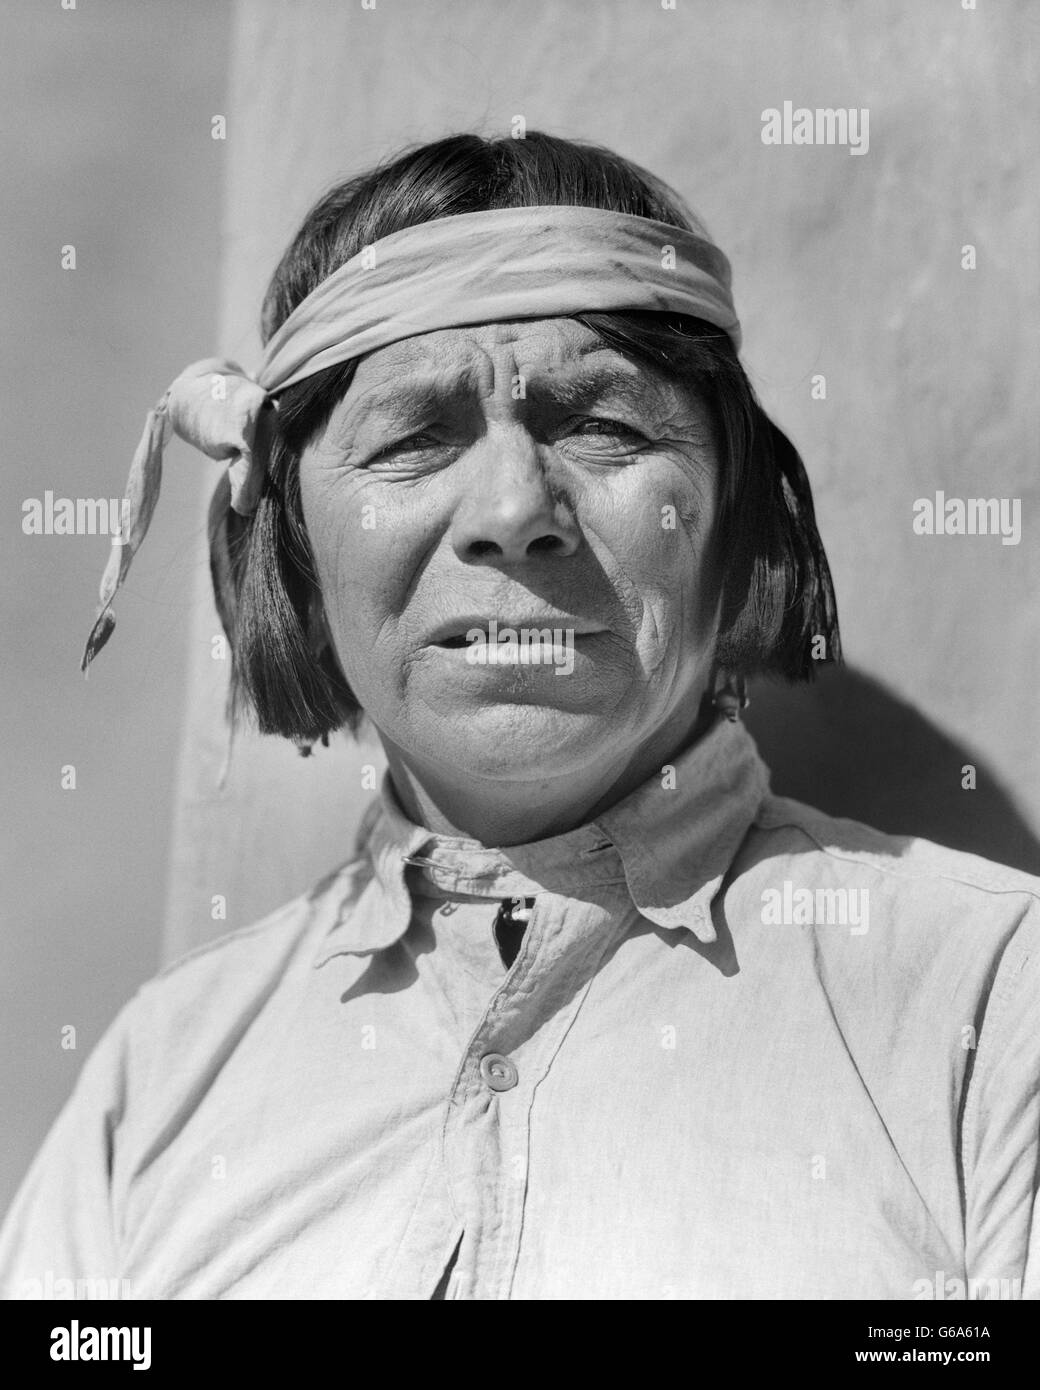 1930s PORTRAIT NATIVE AMERICAN MAN LOOKING AT CAMERA SAN ILDEFONSO PUEBLO NEW MEXICO USA - Stock Image